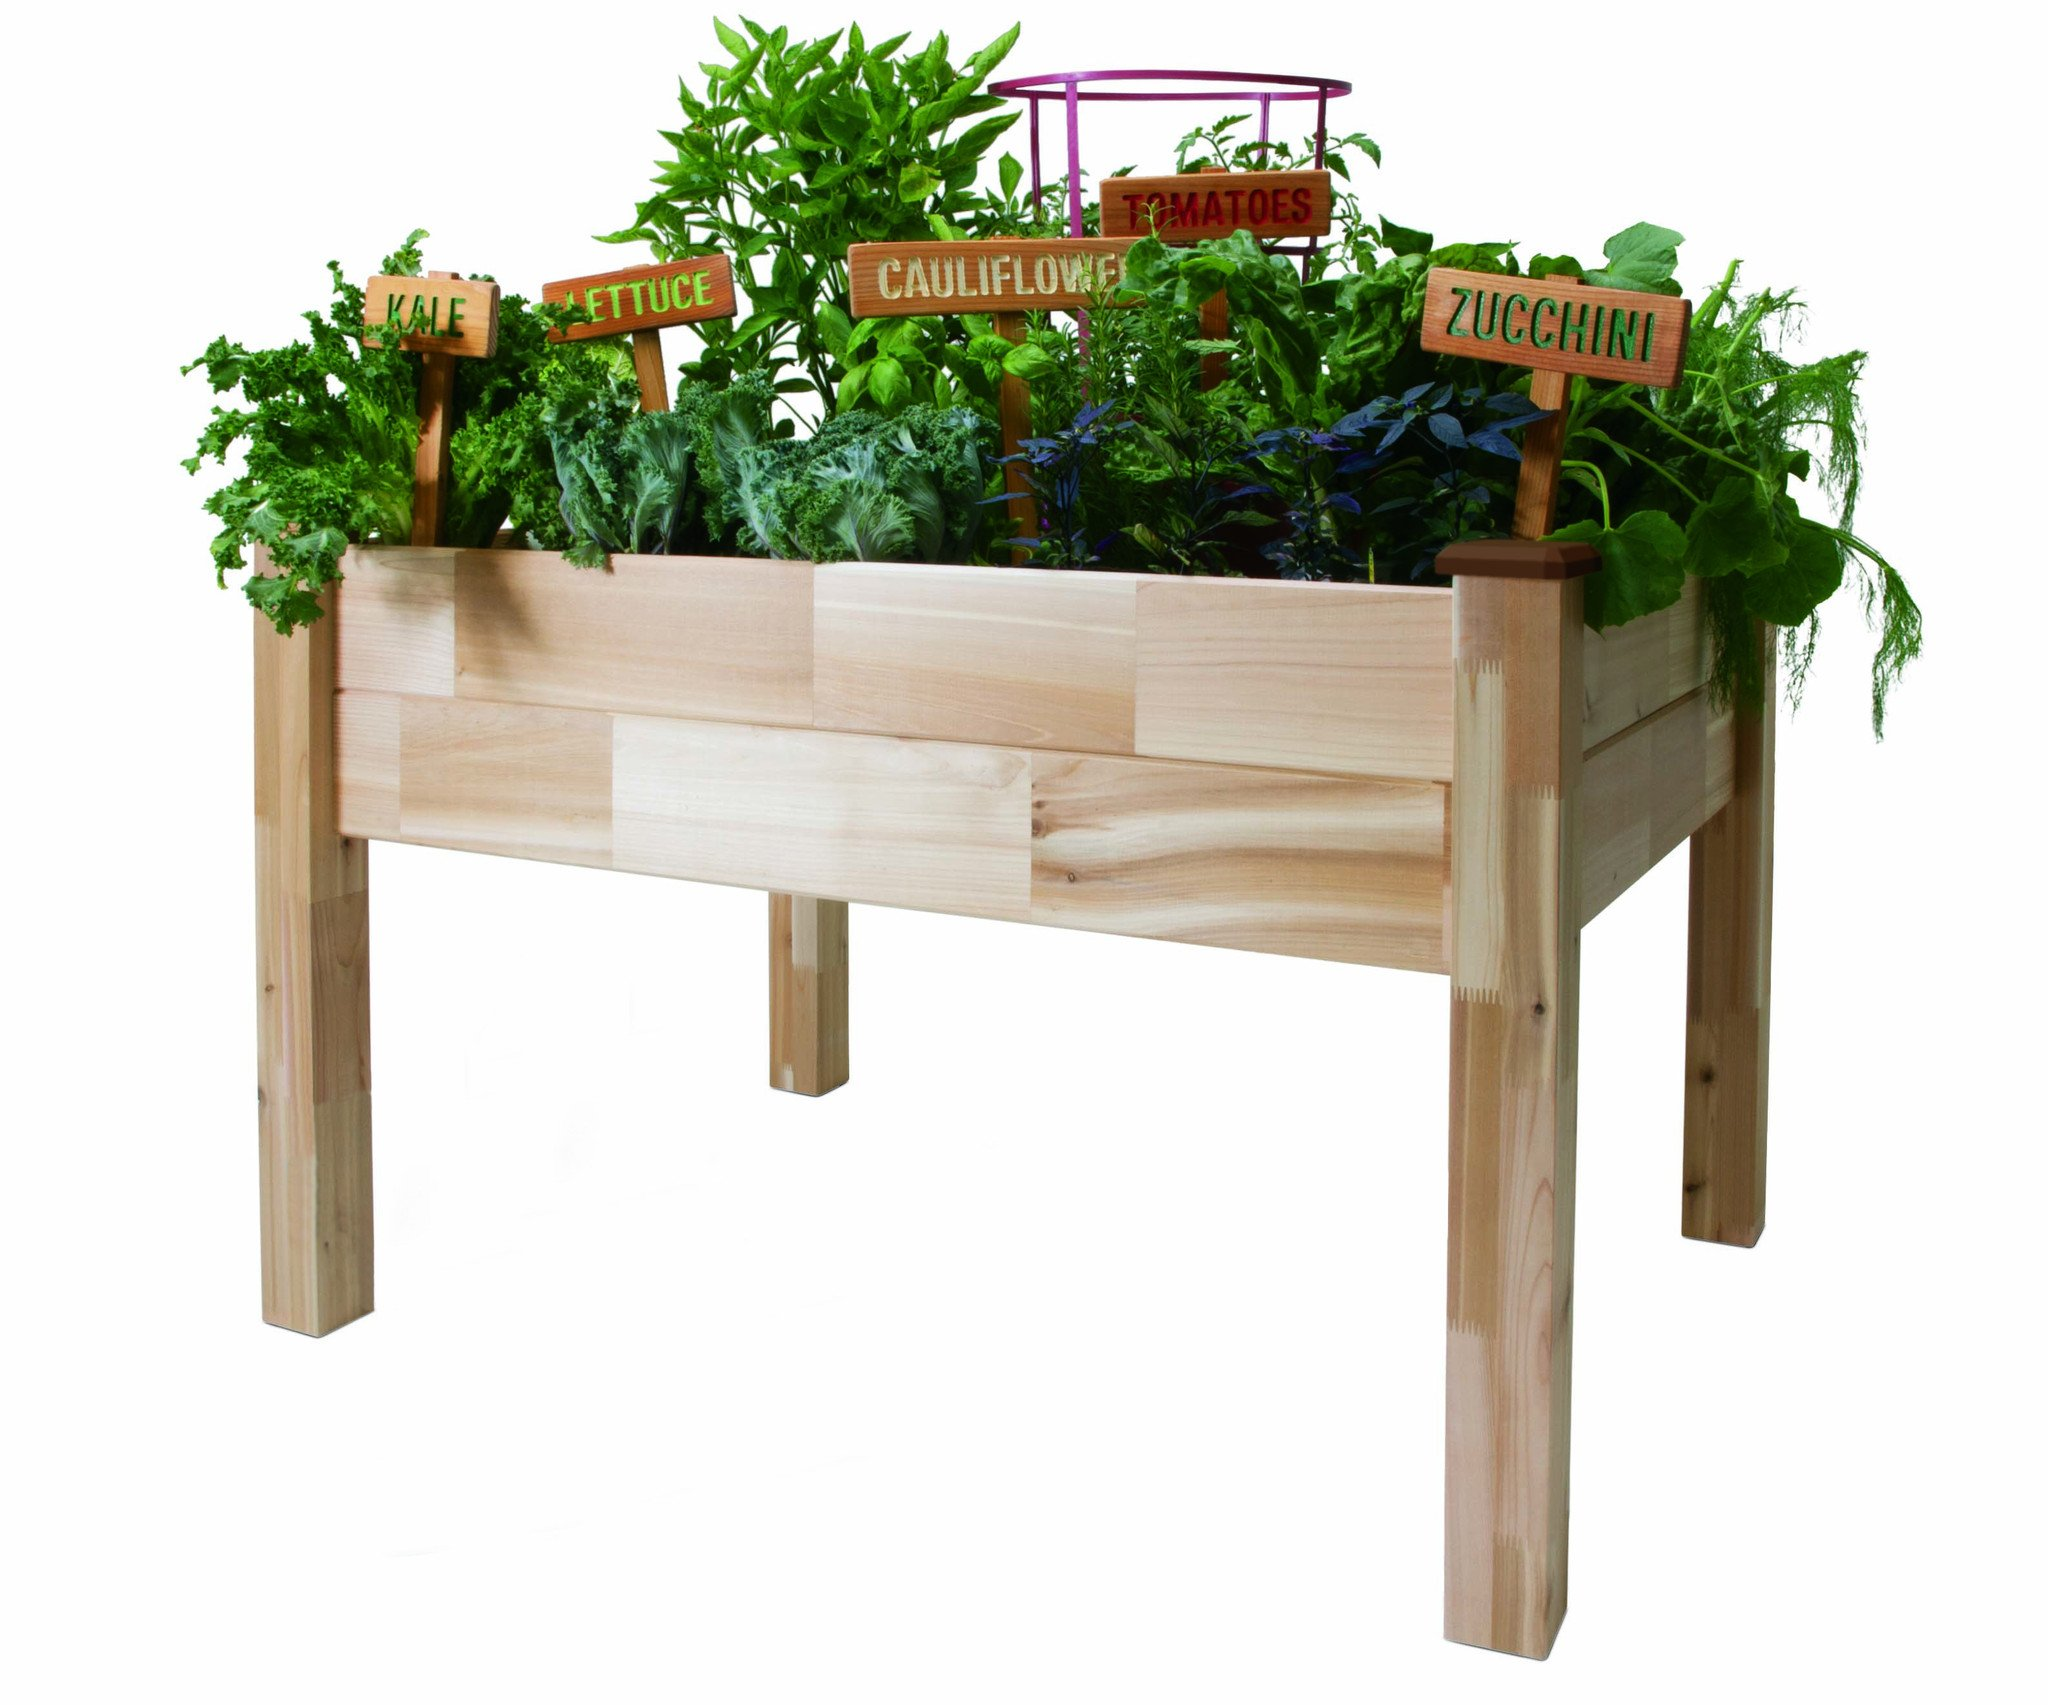 """CedarCraft Elevated Cedar Planter (23"""" x 49"""" x 30""""H) + Greenhouse Cover - Complete Raised Garden kit to Grow Tomatoes, Veggies & Herbs. Greenhouse extends Growing Season, Protects Plants 1 The complete gardening kit to maximize your growing season Easy working height minimizes back & knee strain Greenhouse cover protects & provides the perfect microclimate for plants"""